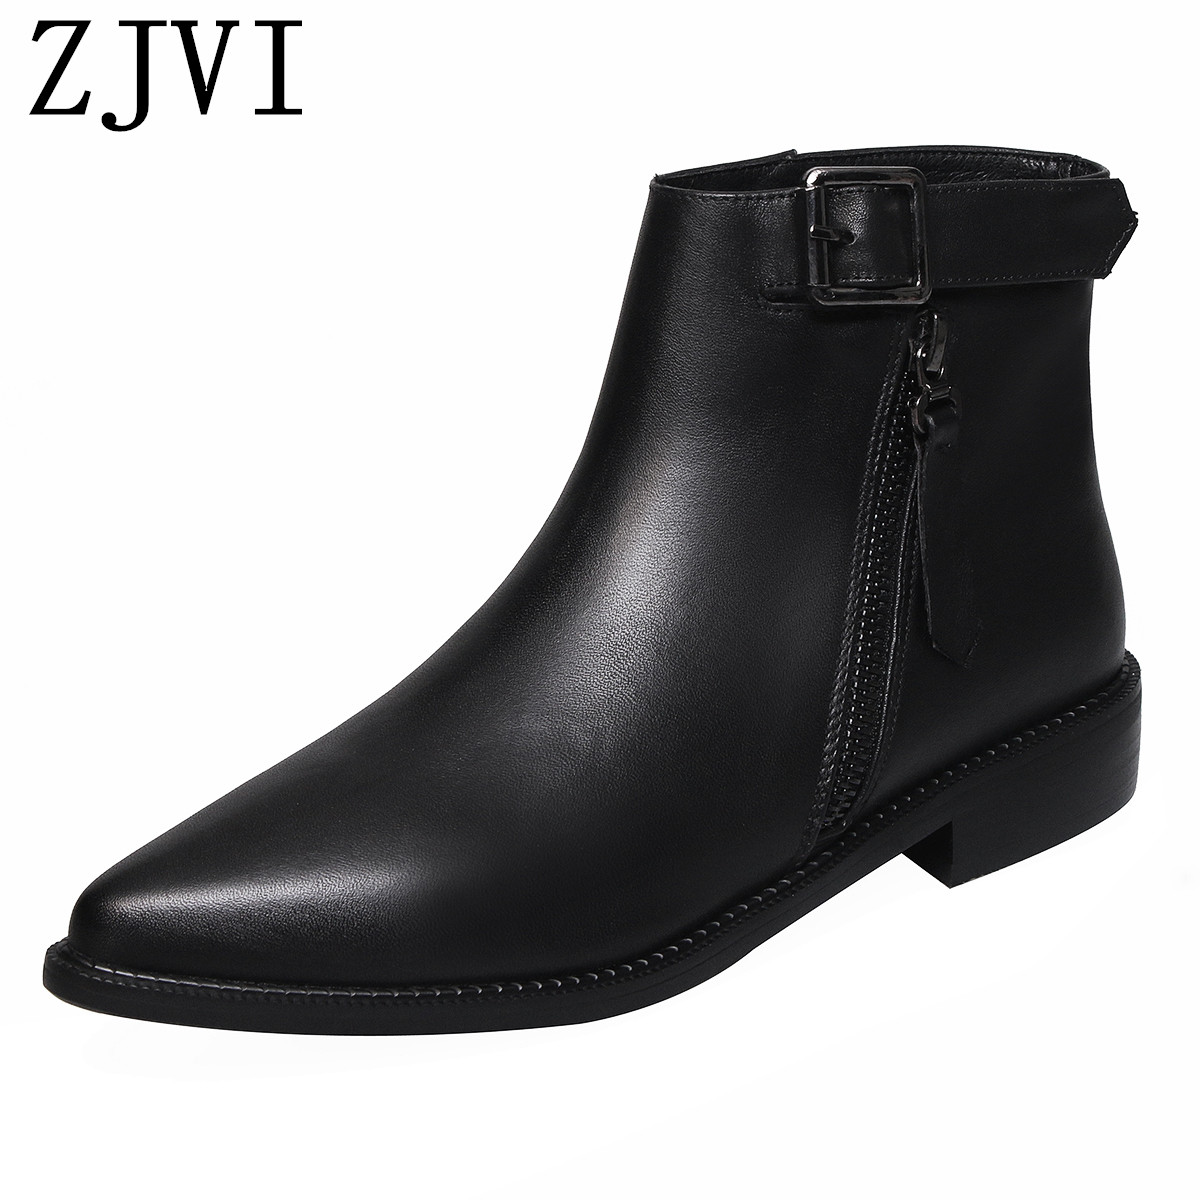 ZJVI women genuine leather square low heels ankle boots winter autumn black woman ladies pointed toe shoes for girls 2019